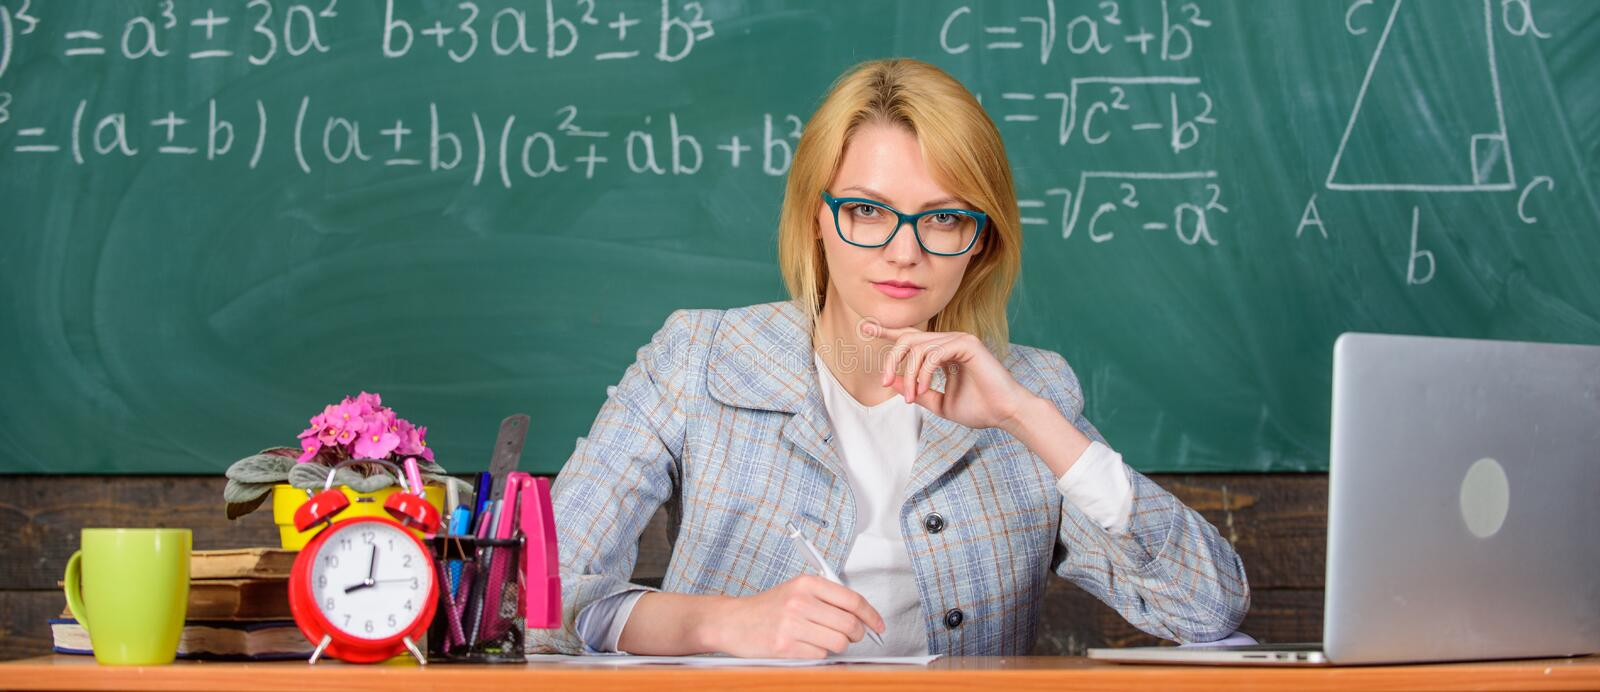 Teacher woman sit table classroom chalkboard background. Present lesson in comprehensive manner to facilitate learning. Create and distribute educational royalty free stock photos